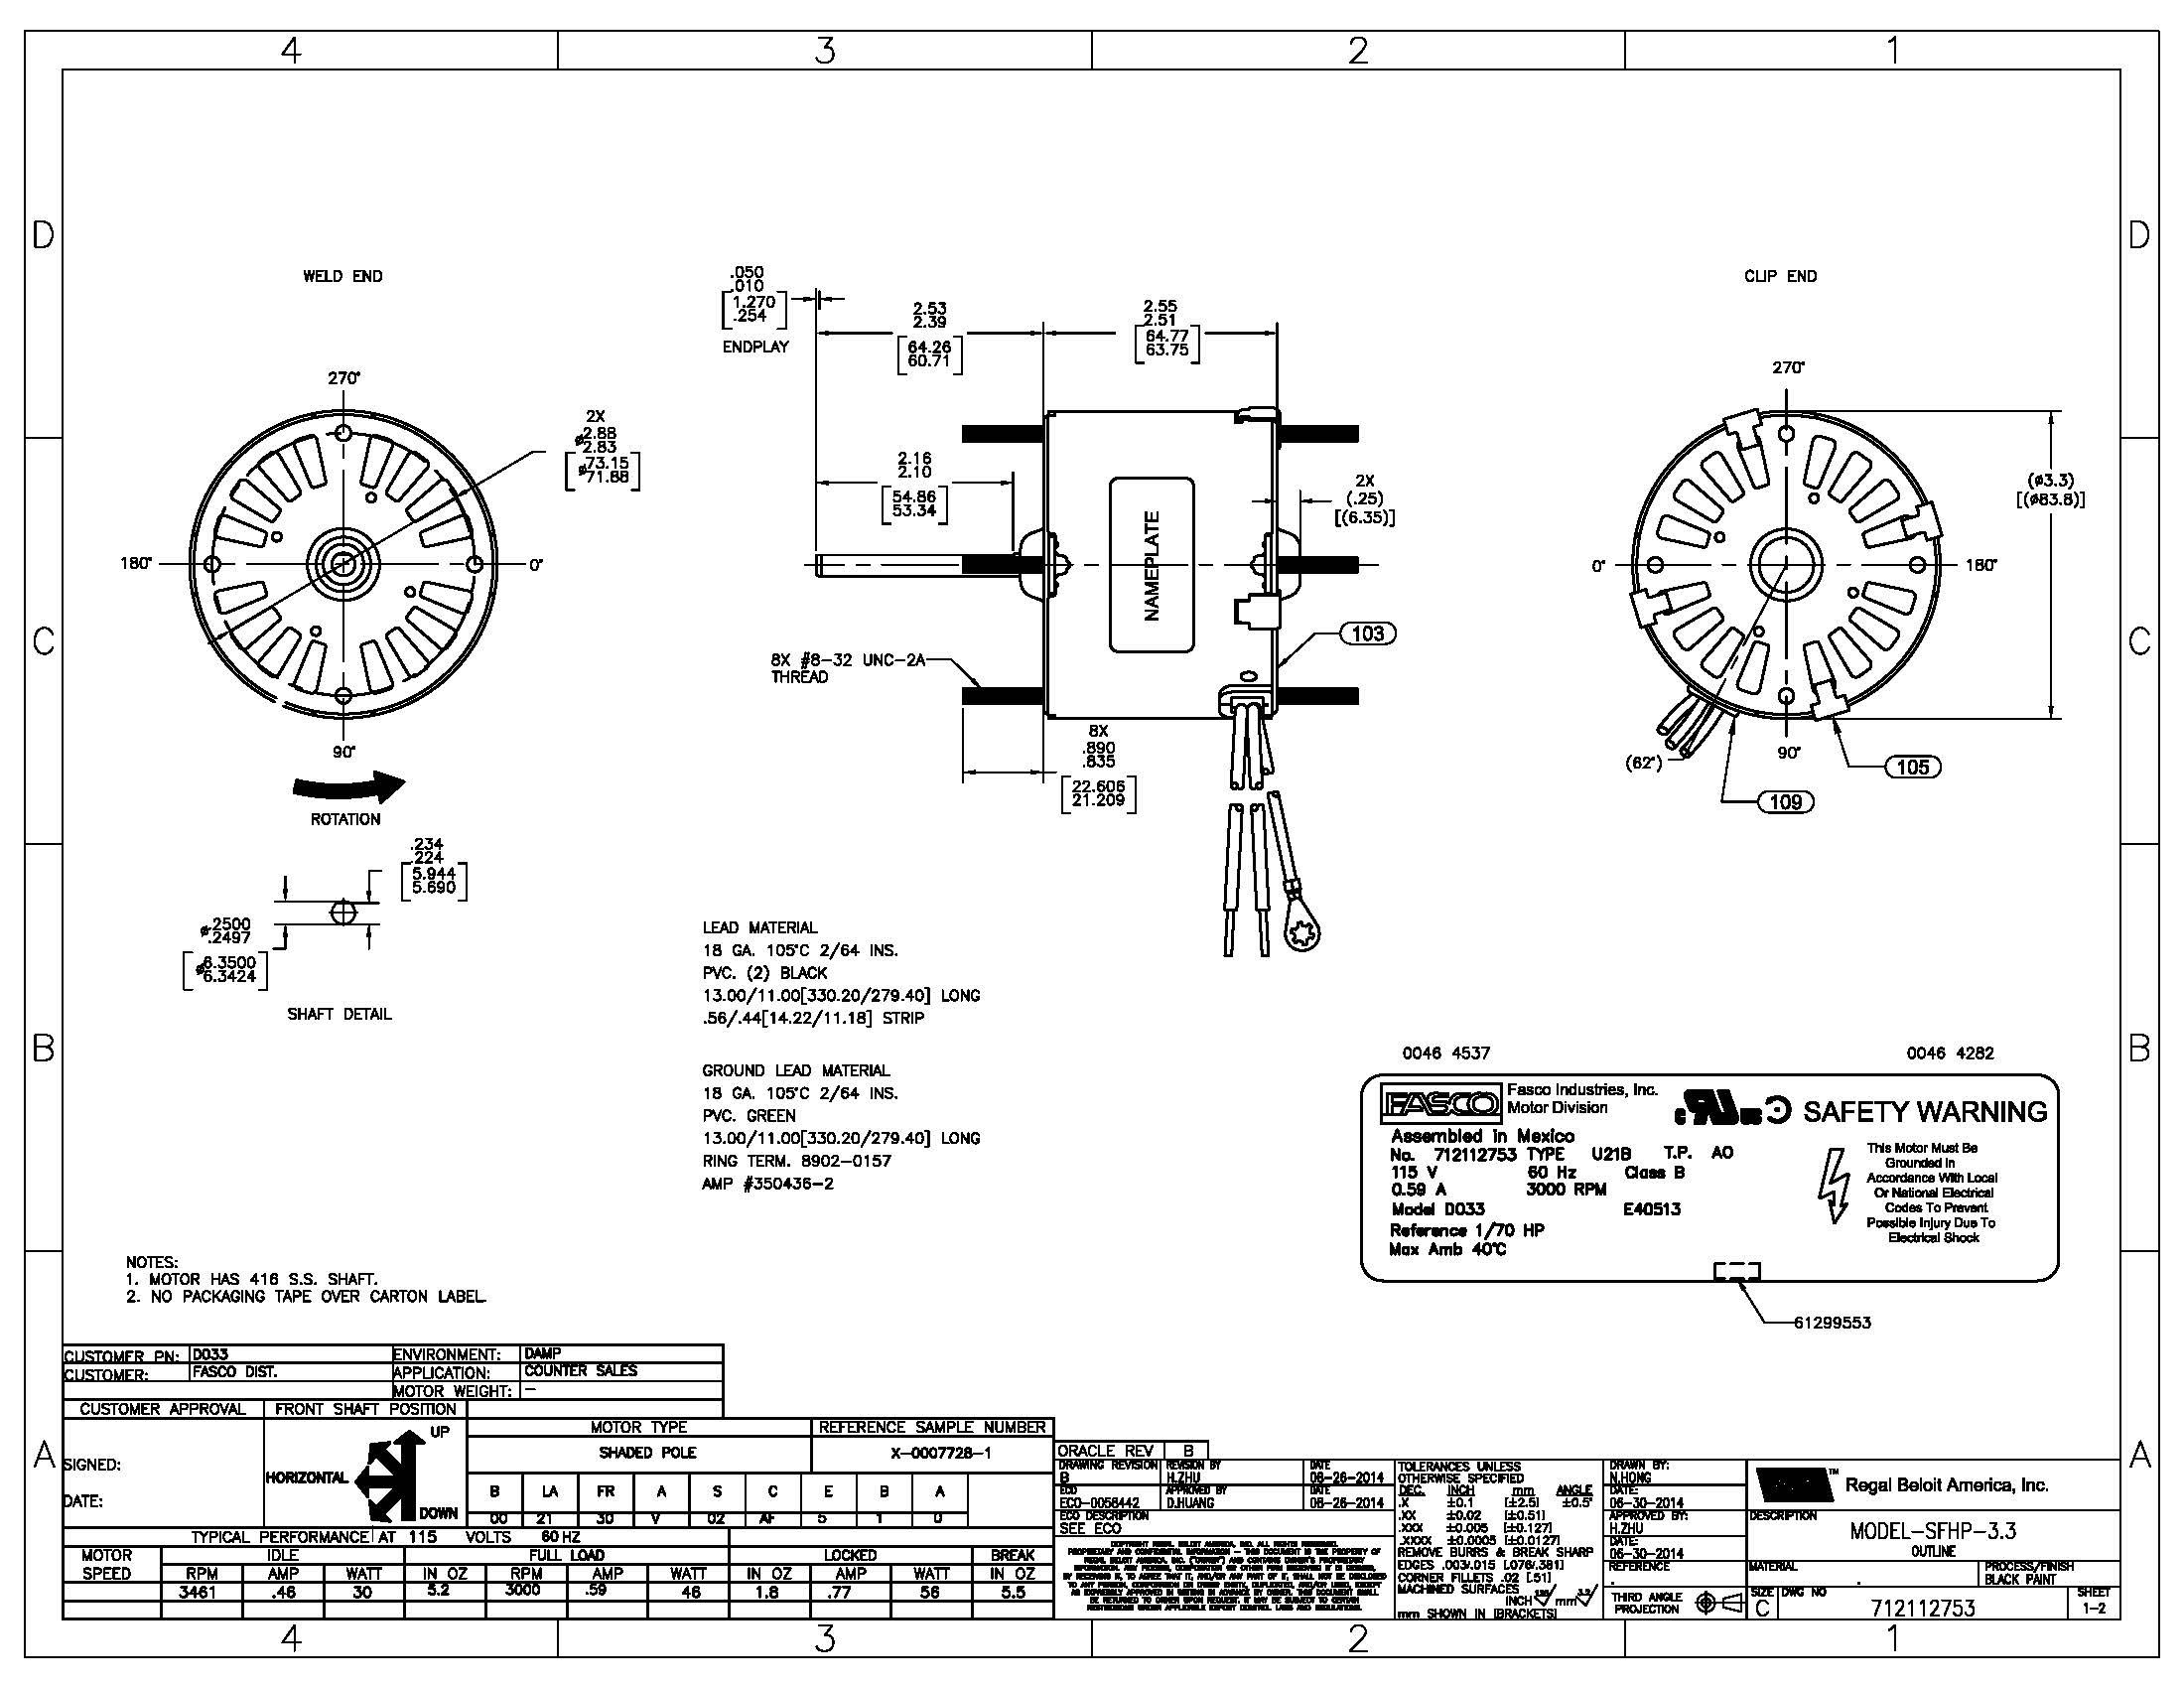 schematic diagram of shaded pole motor - impremedia.net fasco d7909 wiring diagram #1